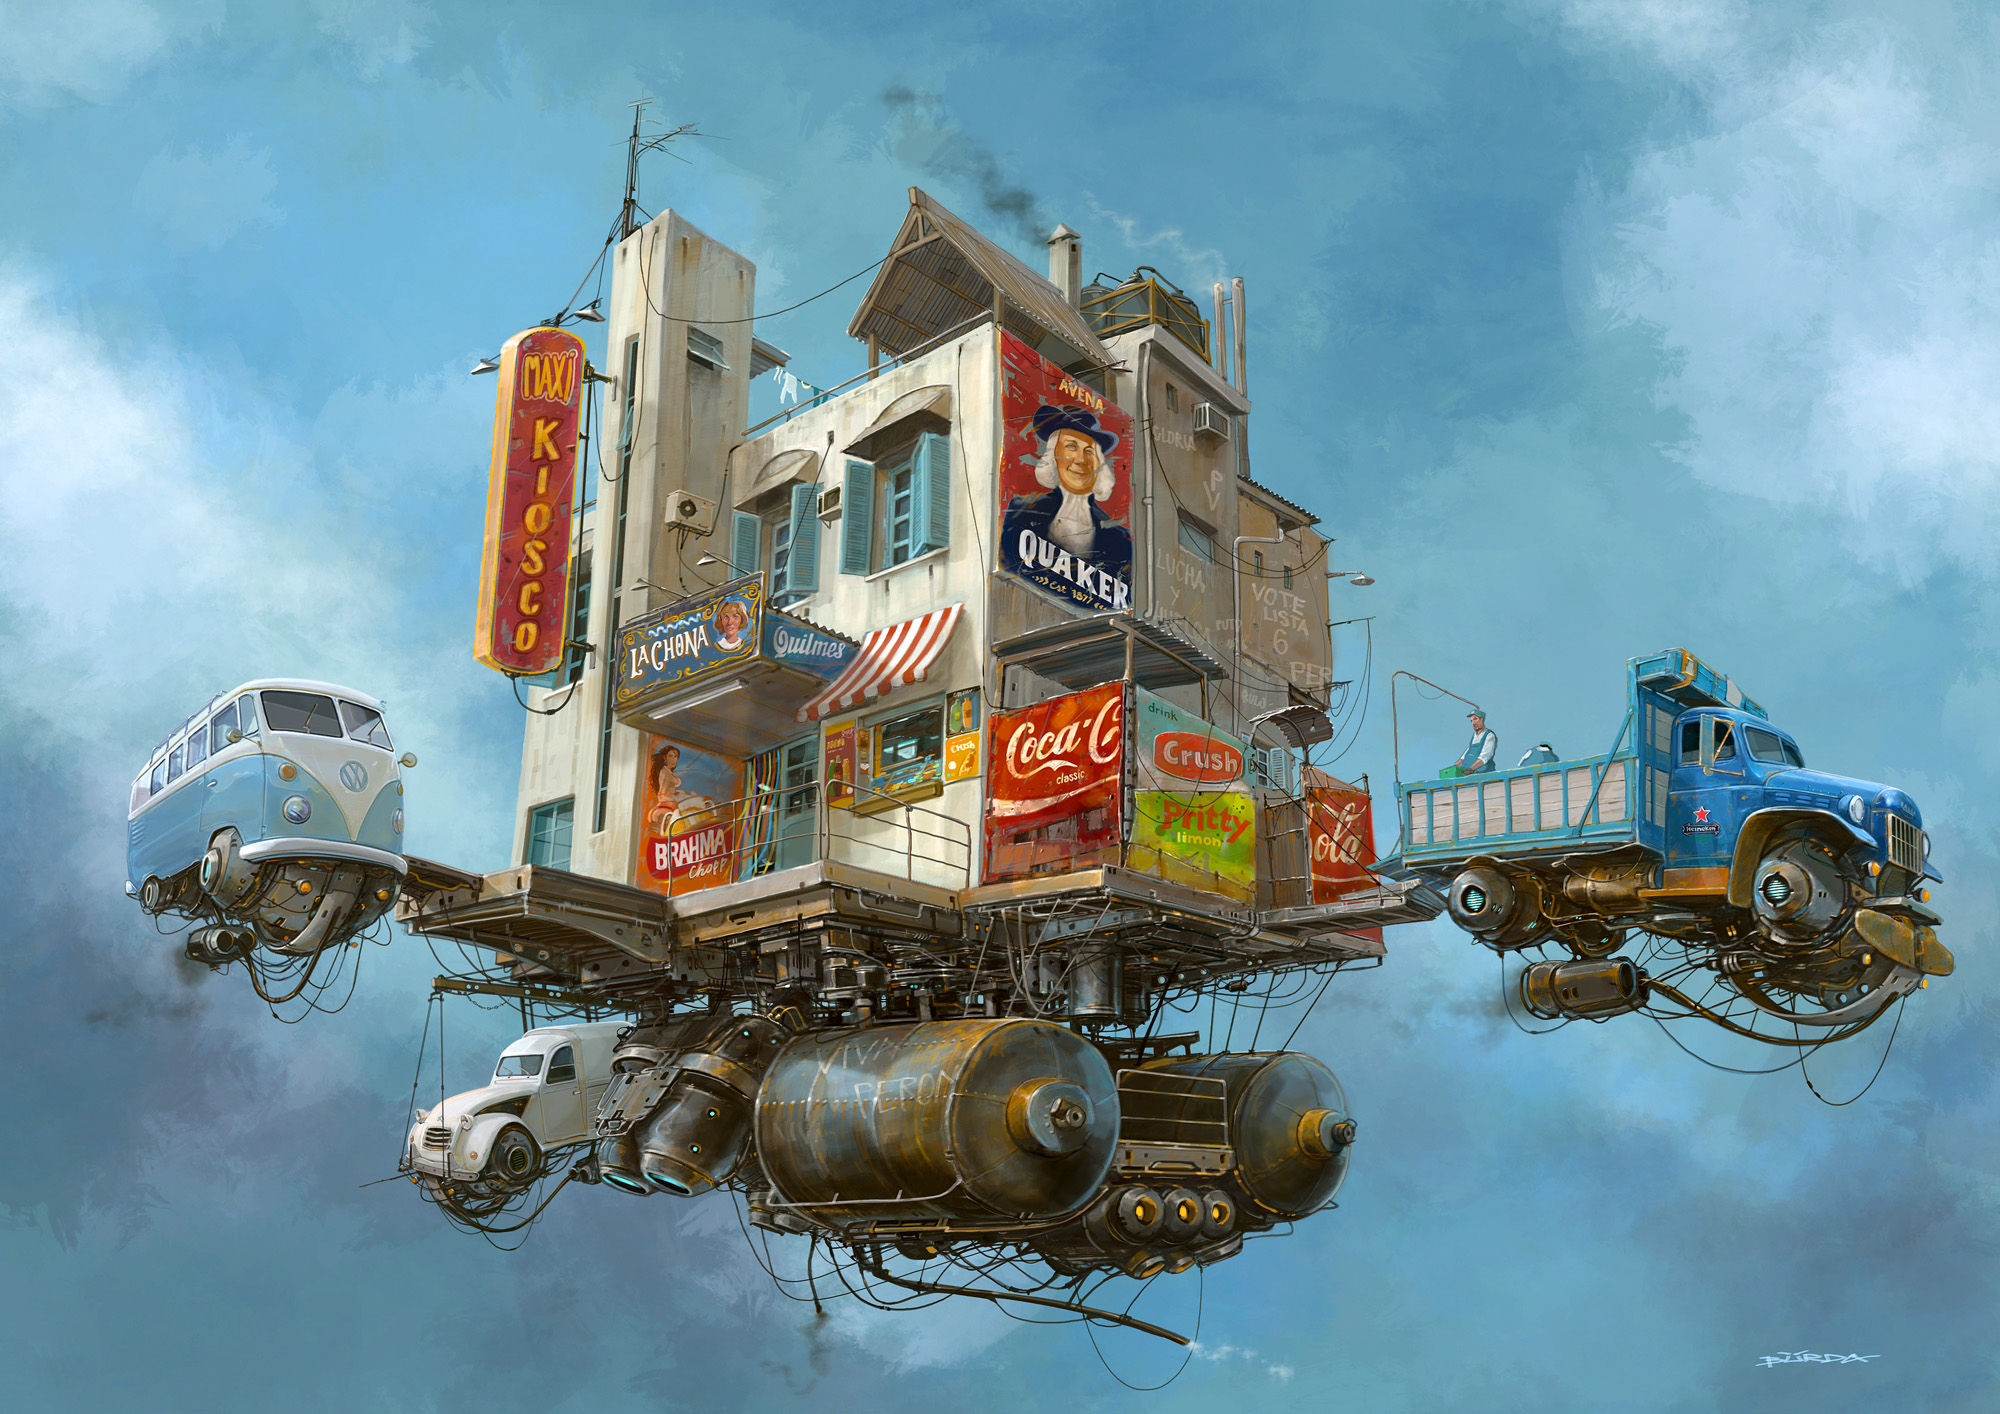 alejandro burdisio - illustration